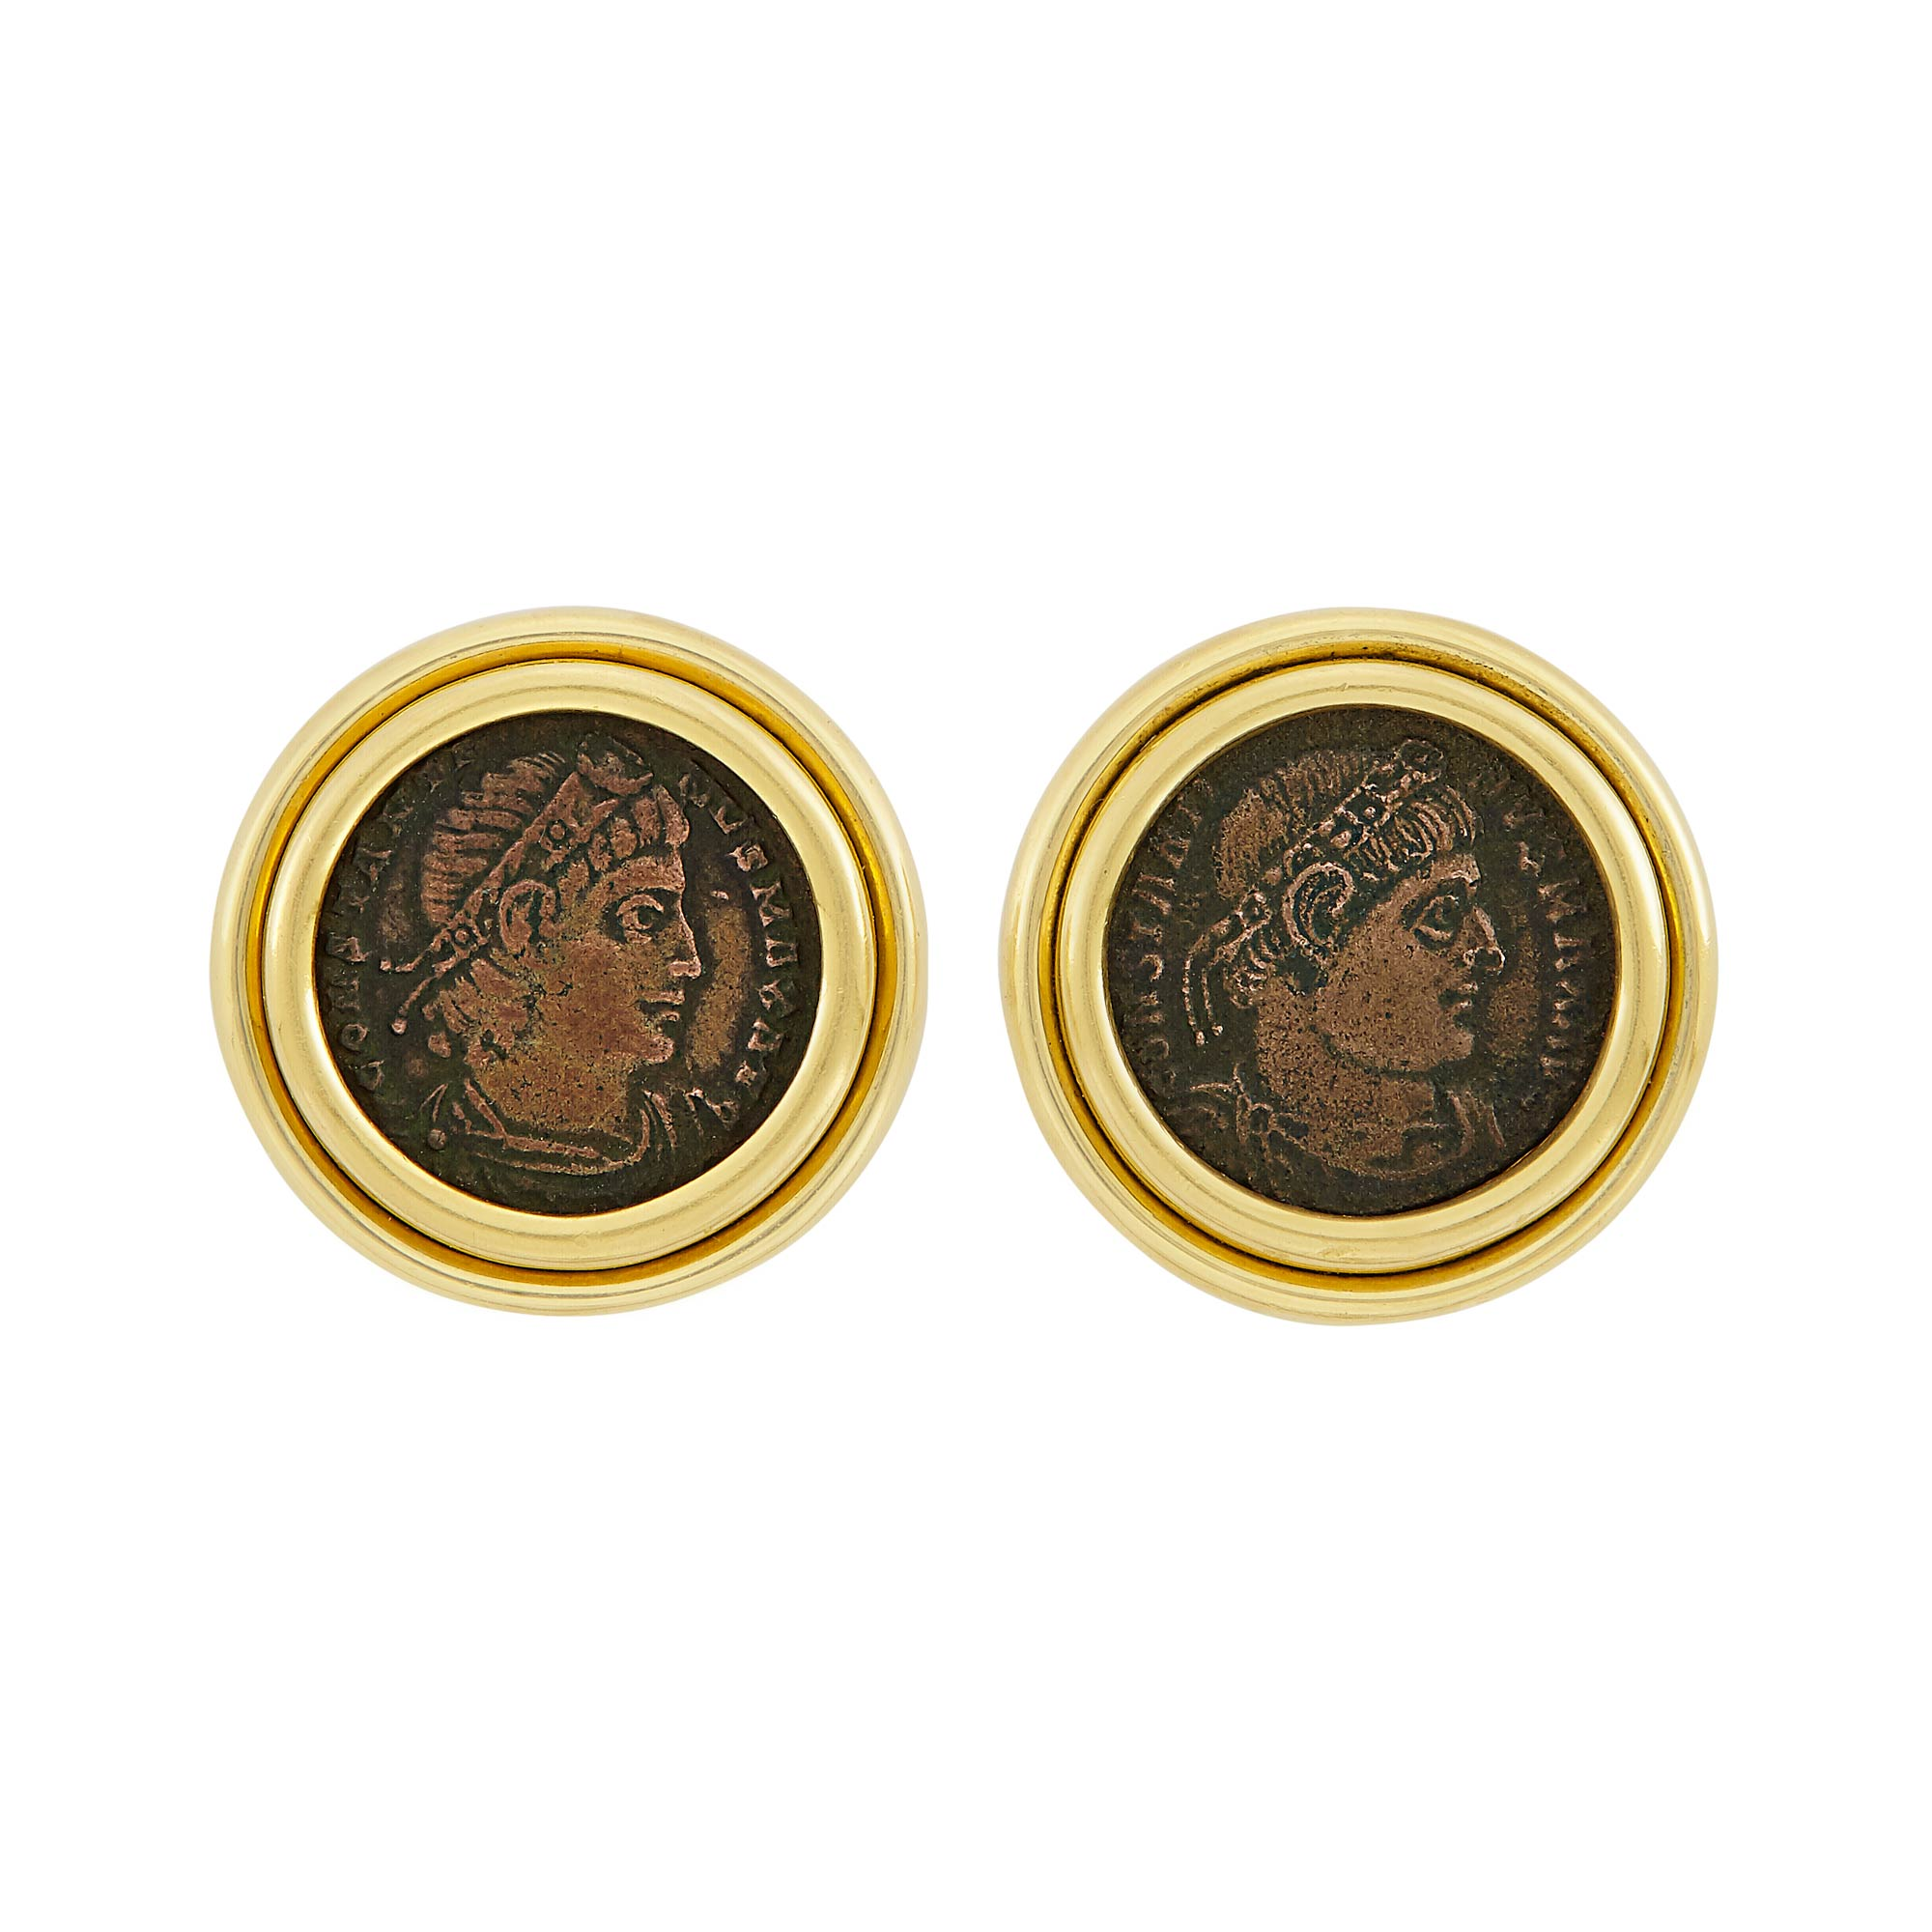 Lot image - Pair of Gold and Bronze Coin Earrings, Bulgari